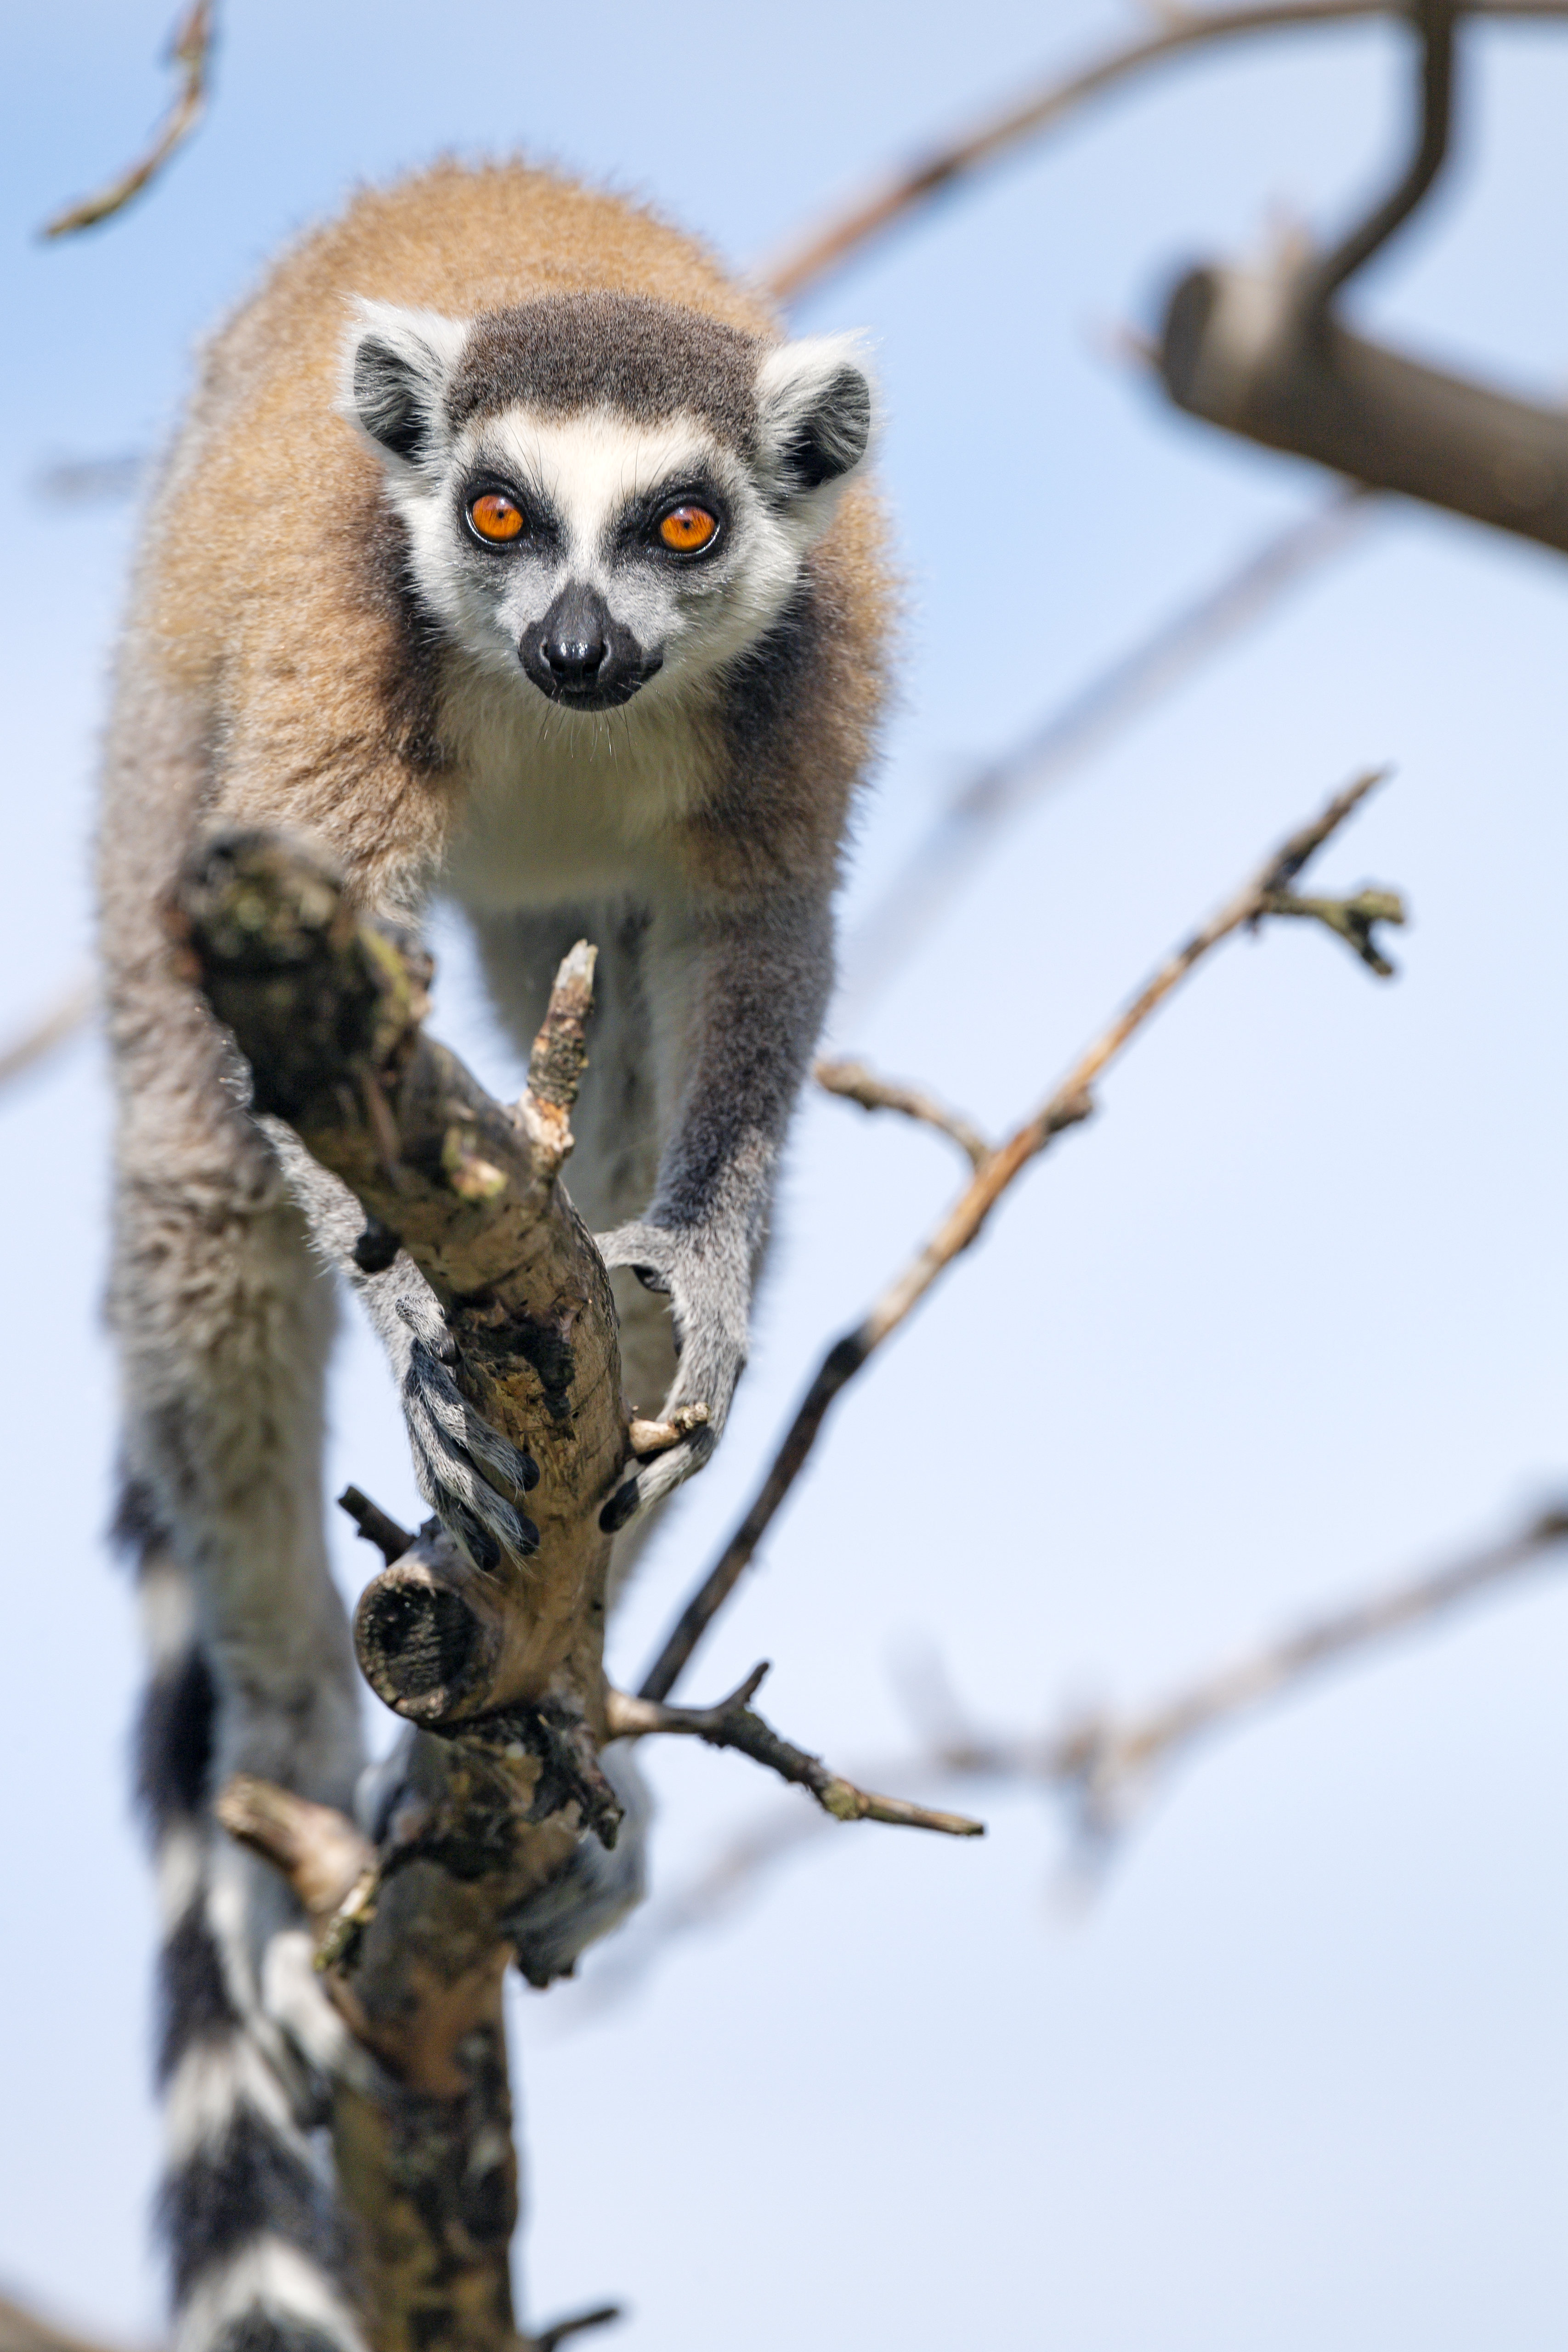 98921 download wallpaper Animals, Lemur, Animal, Funny, Wood, Tree screensavers and pictures for free